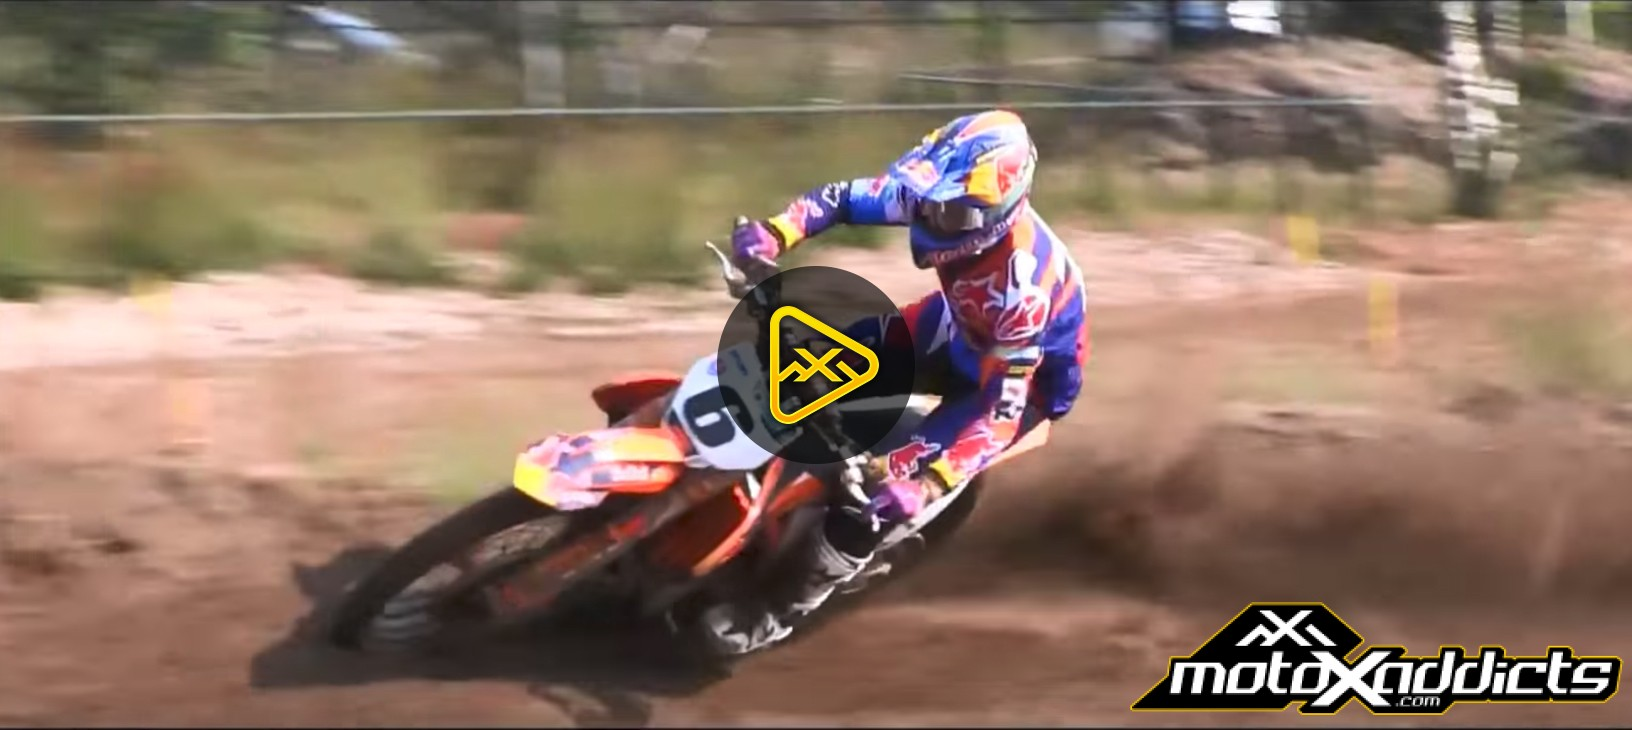 Jeffrey Herlings & Team Netherlands 2017 MXoN Prep